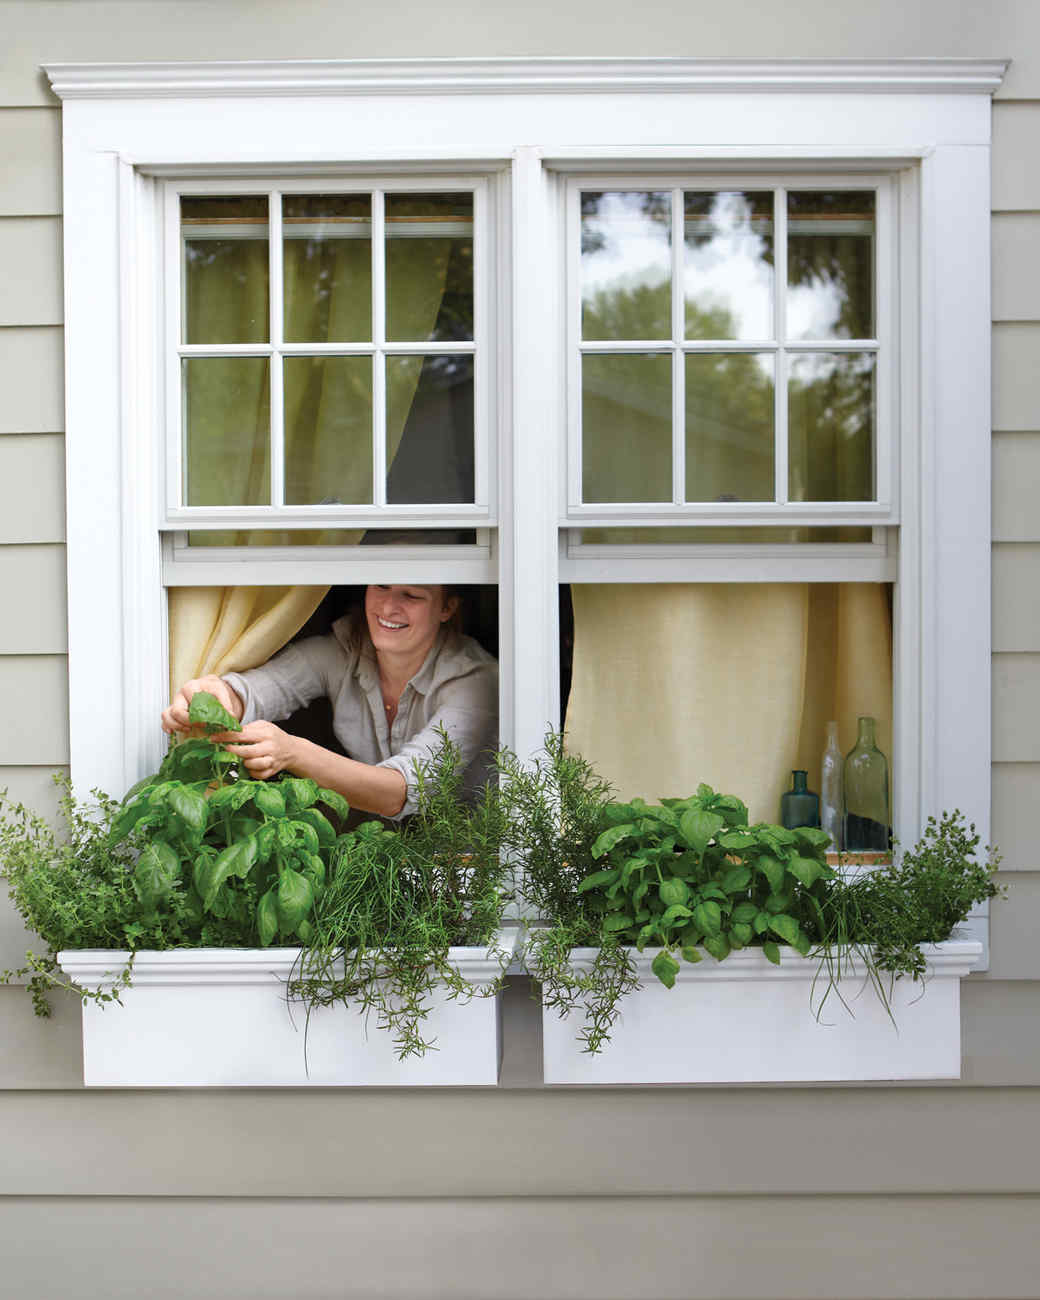 Small space garden ideas martha stewart Garden ideas for small spaces